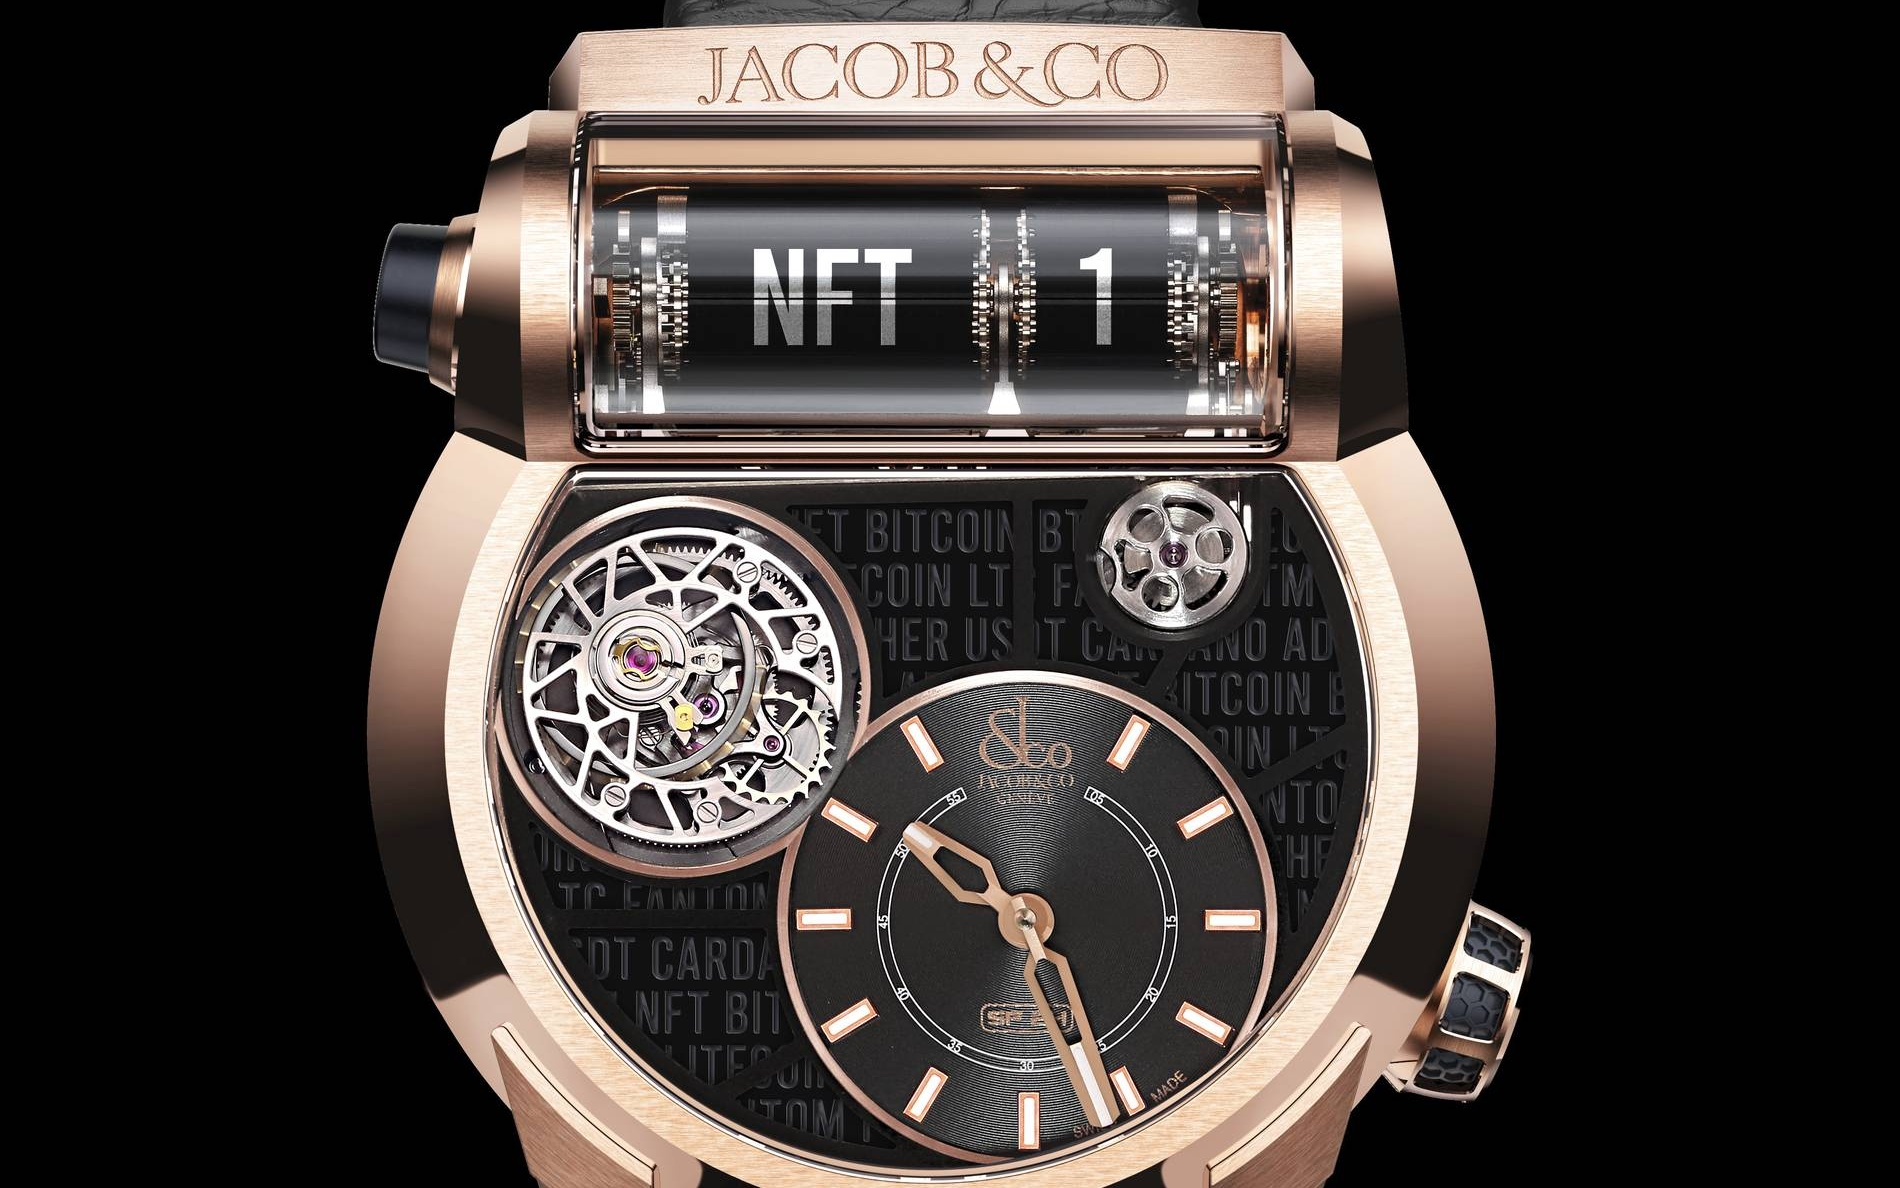 Jacob & Co. SF24 NFT watch